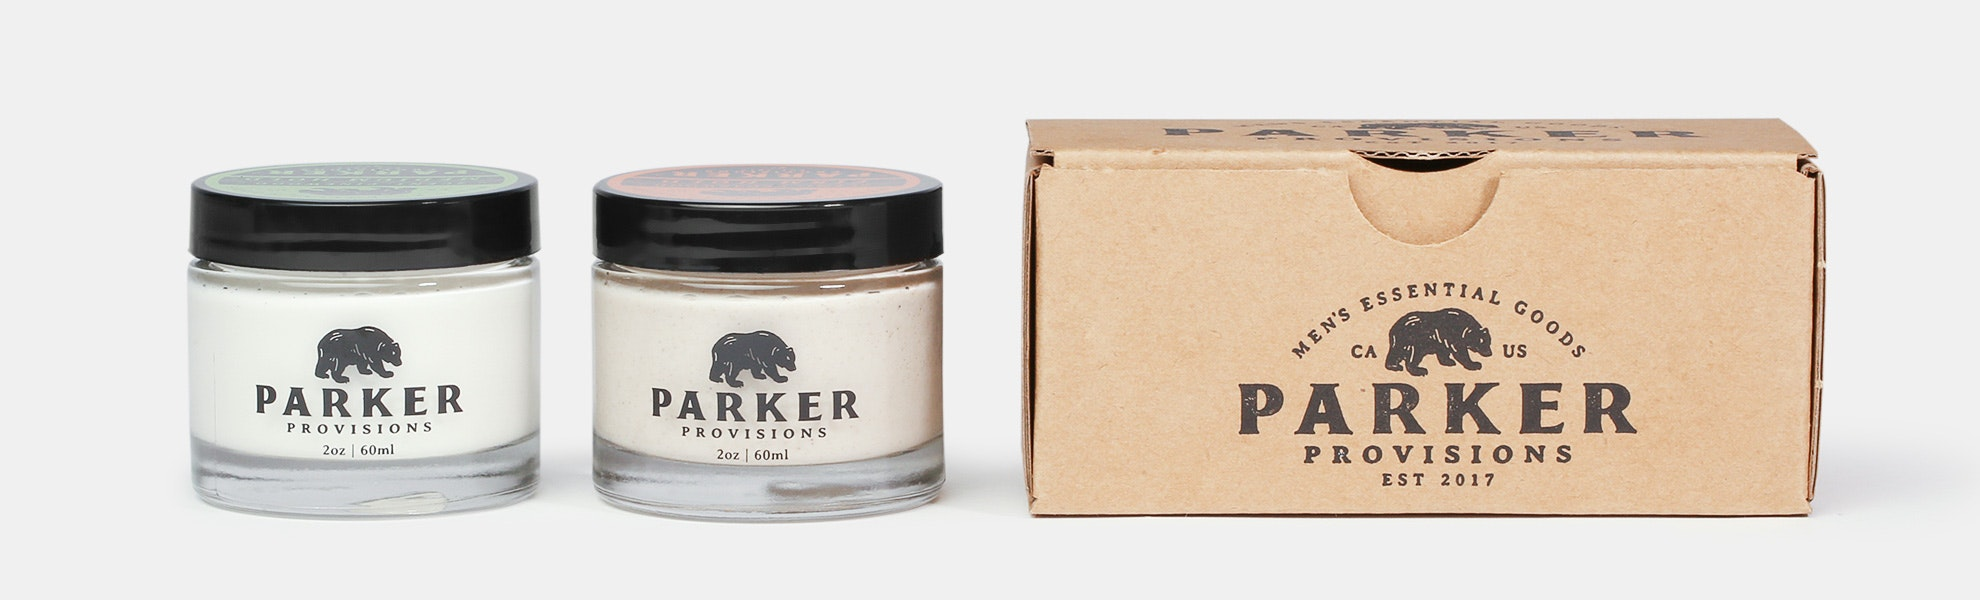 Parker Provisions Pomade Duo